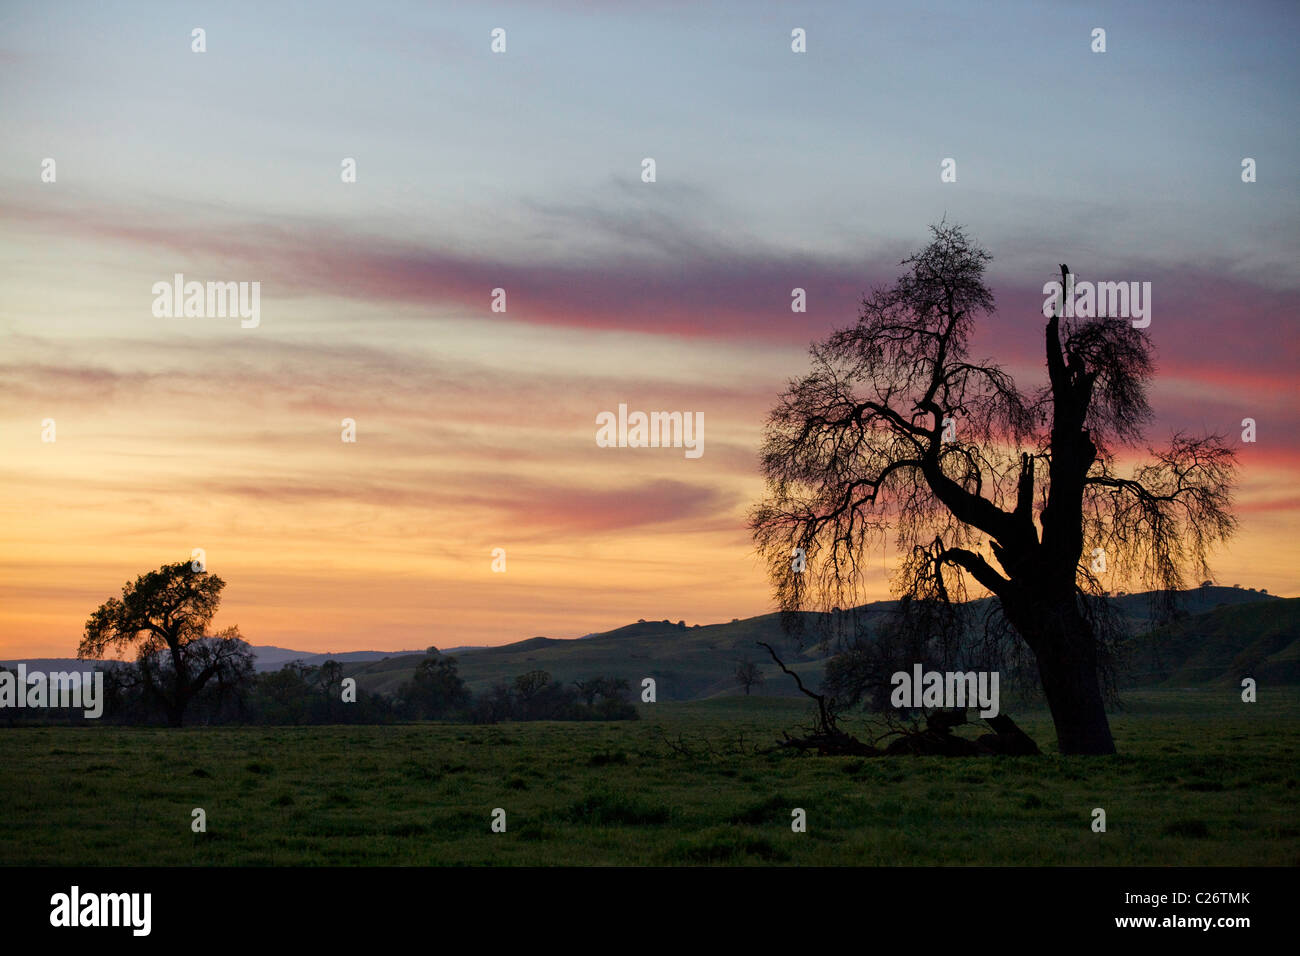 Coast Live Oak tree (Quercus agrifolia) in open field, back lit by sunset - California USA - Stock Image